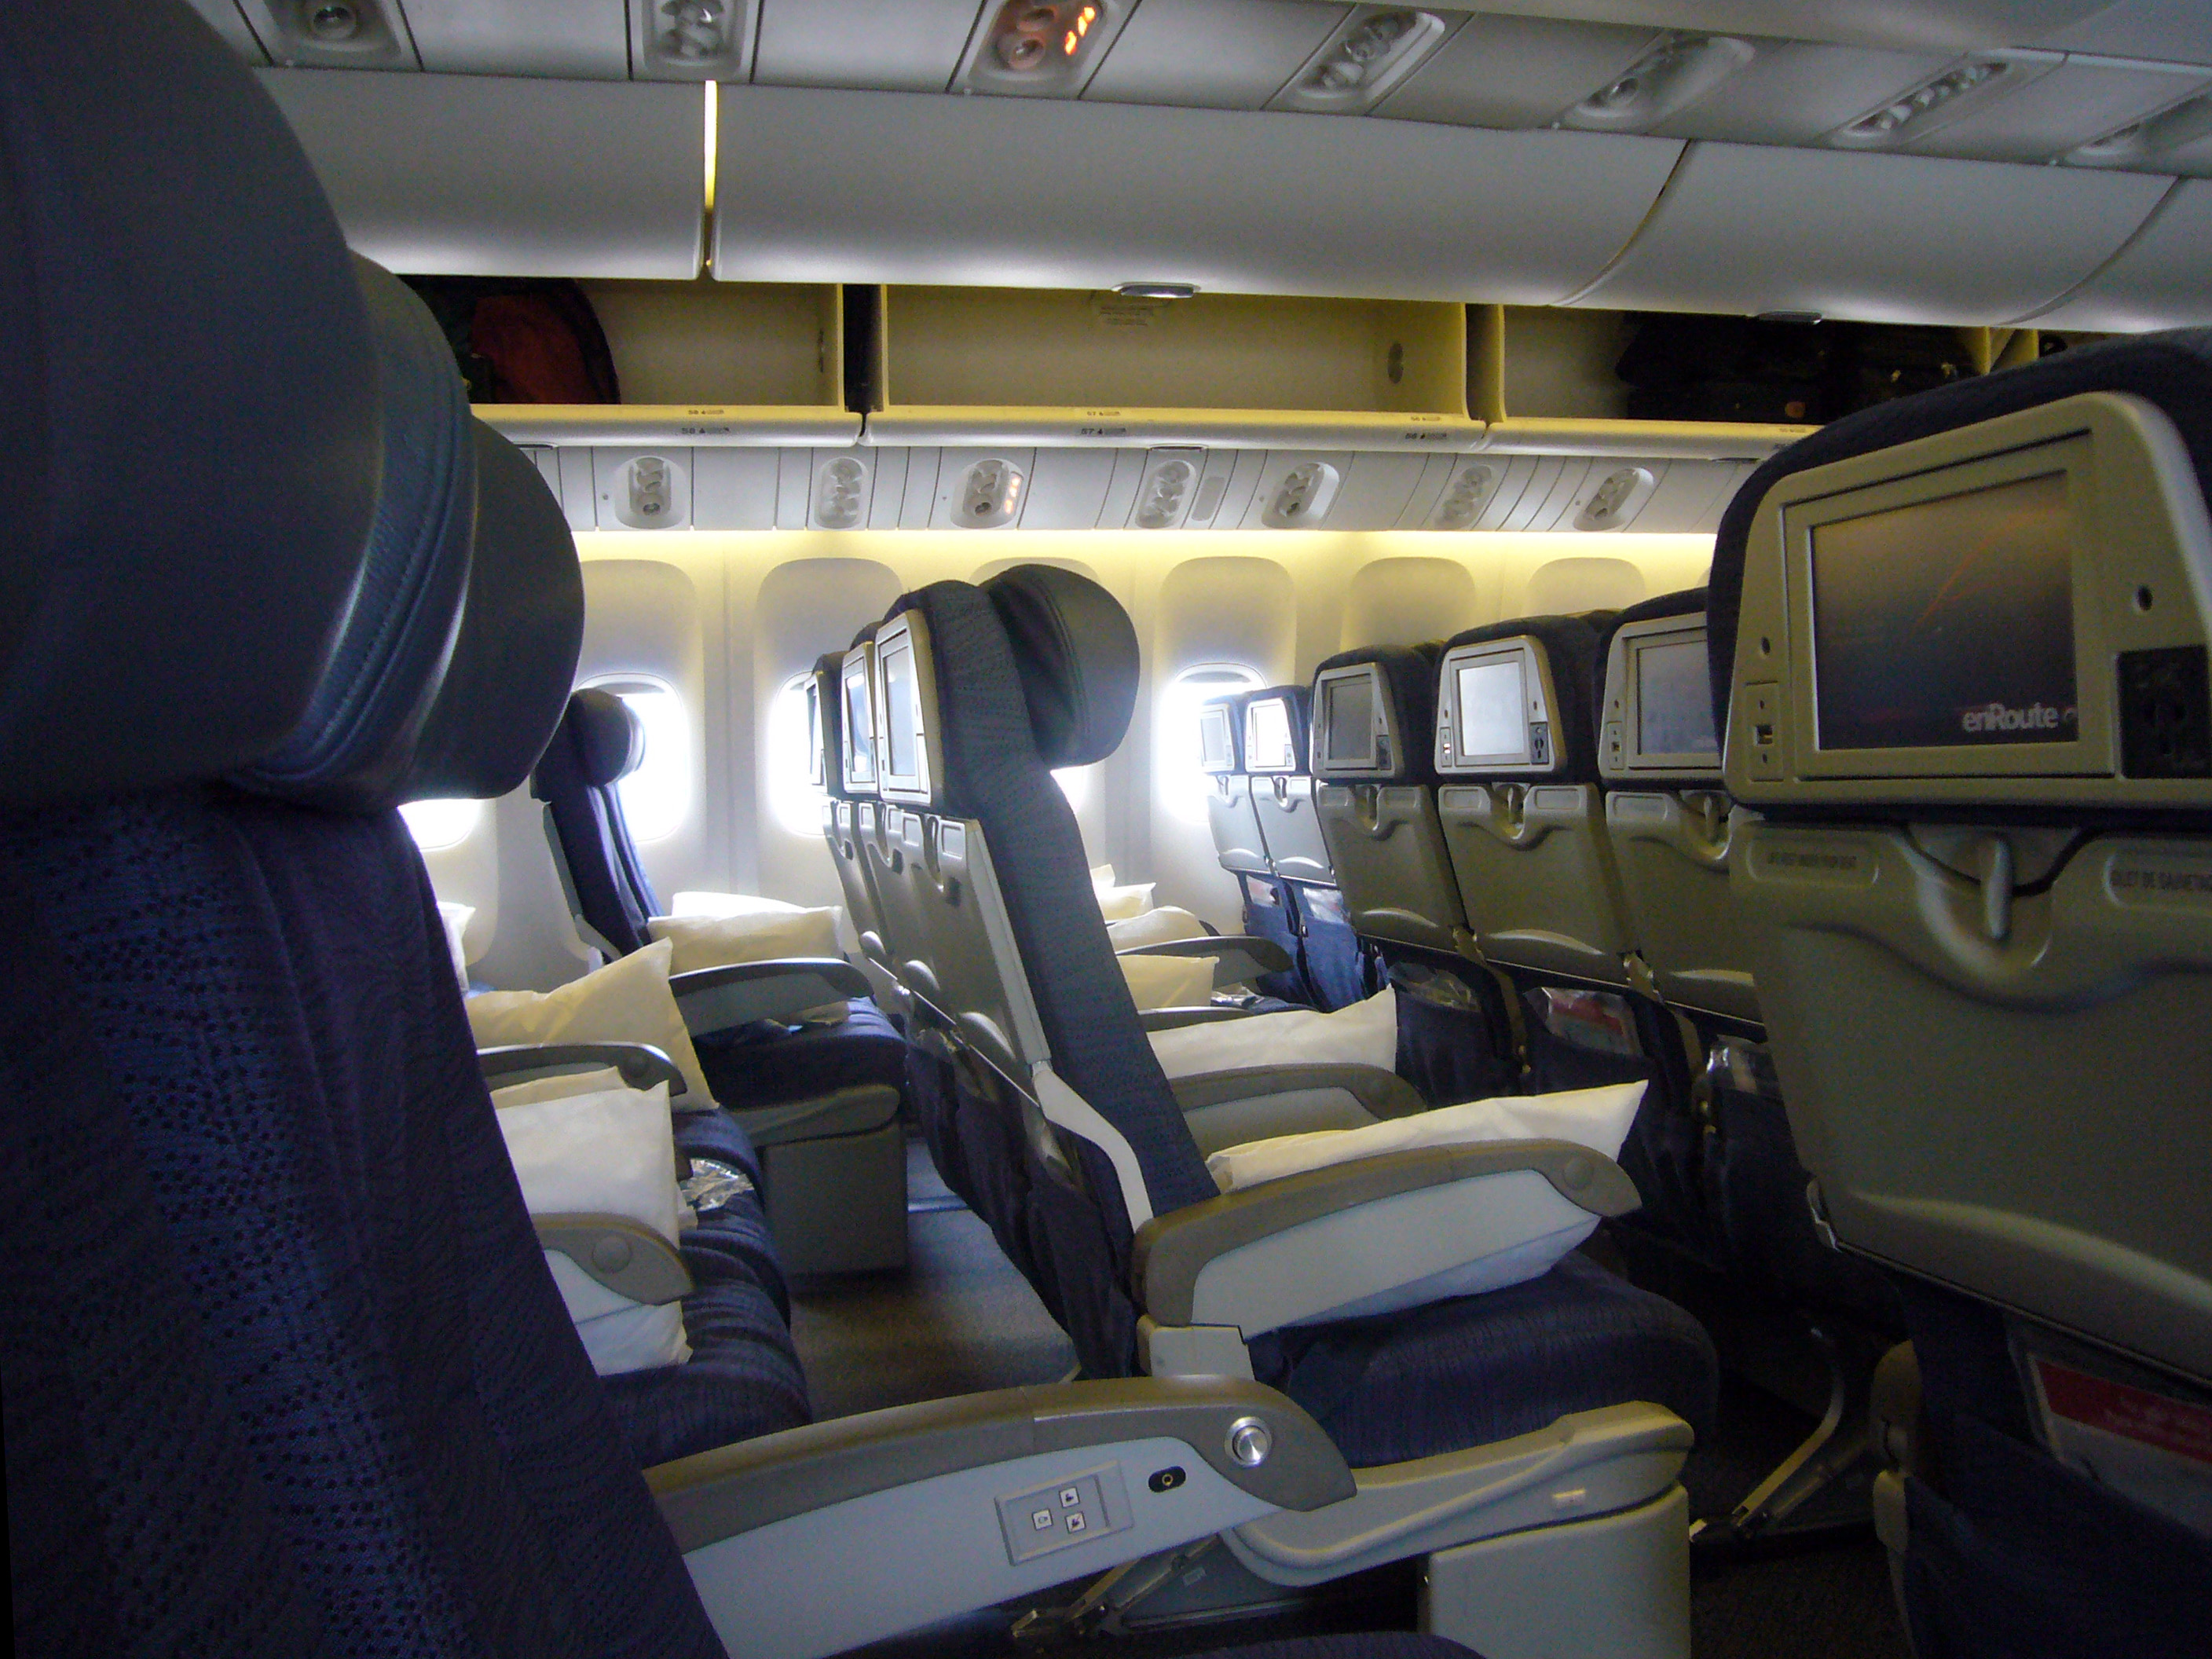 Photo interieur avion air 28 images j ai test 233 pour for Avion jetairfly interieur